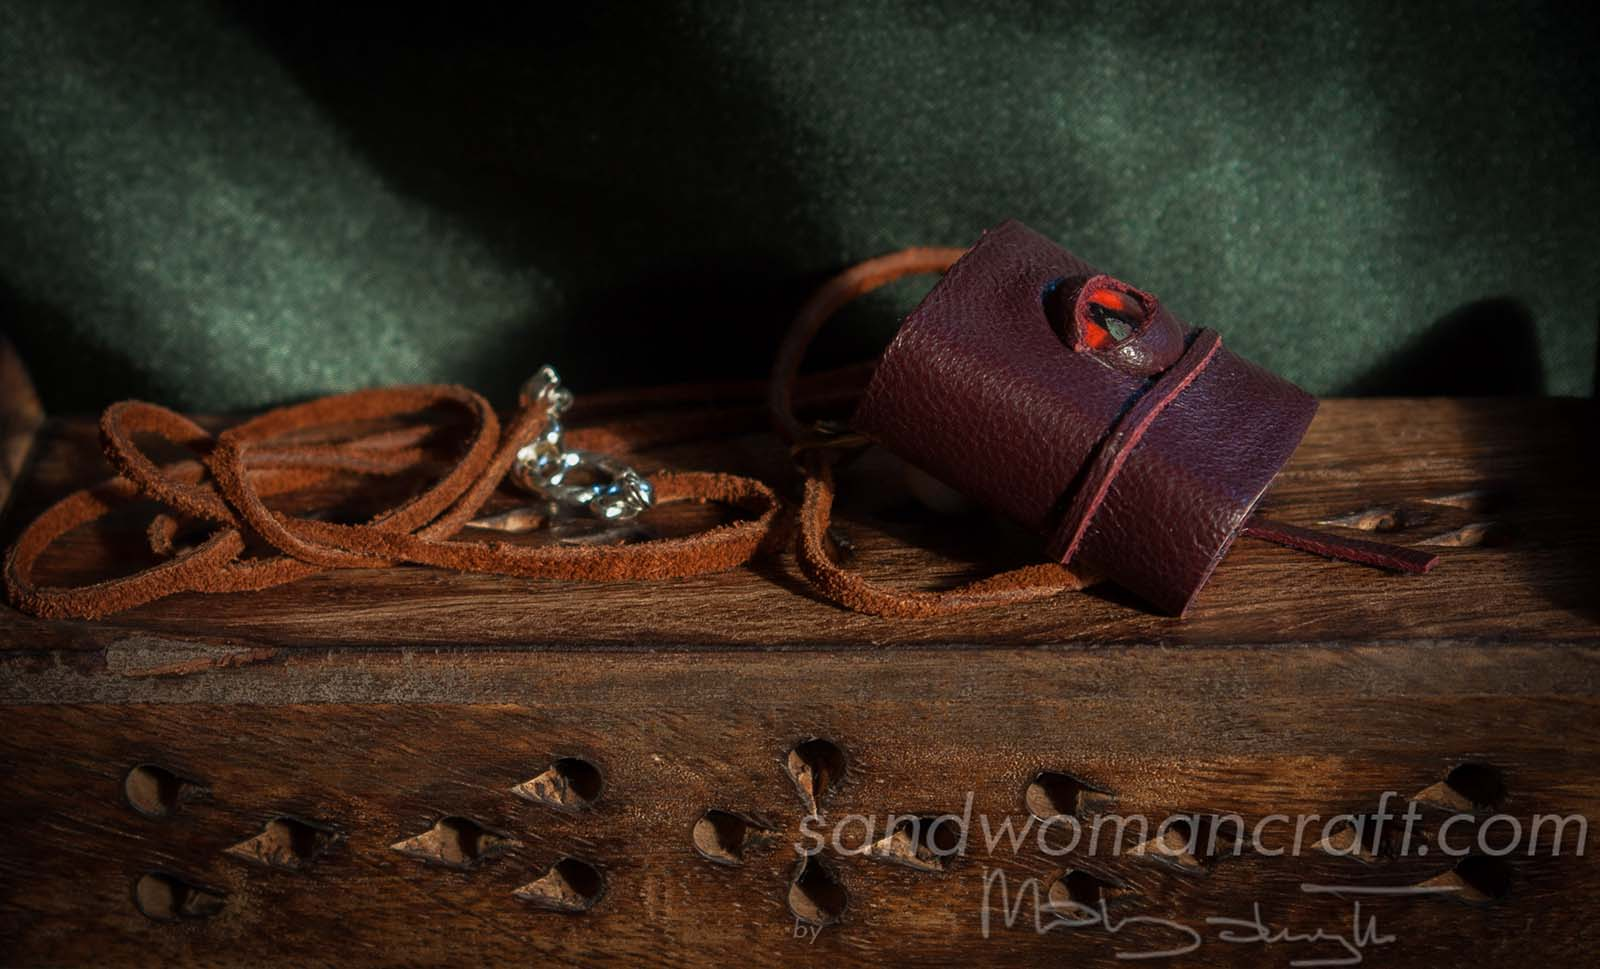 Miniature leather book necklace with real medieval theme book inside